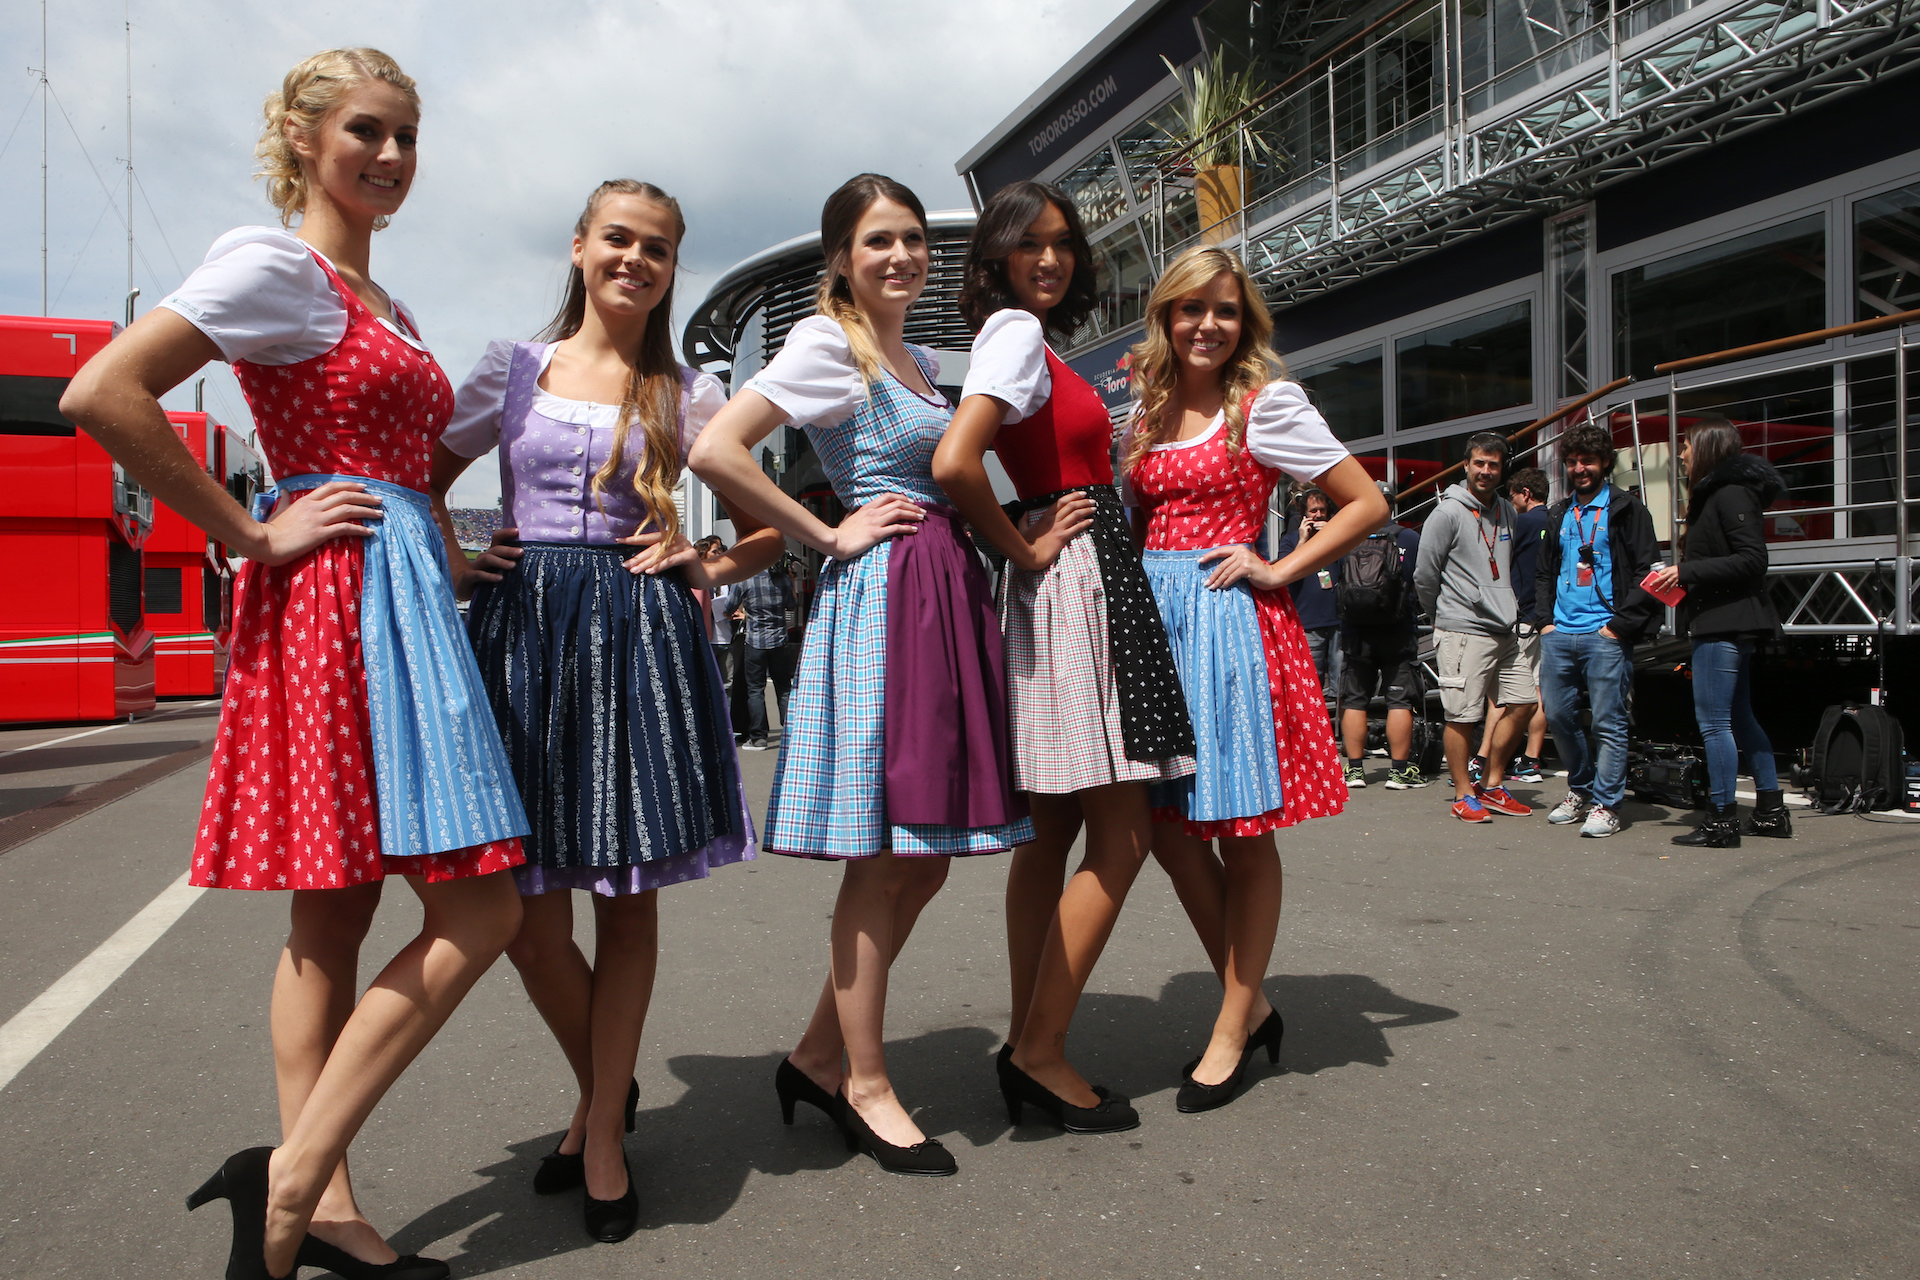 FORMULA 1 - GP of Austria 2015